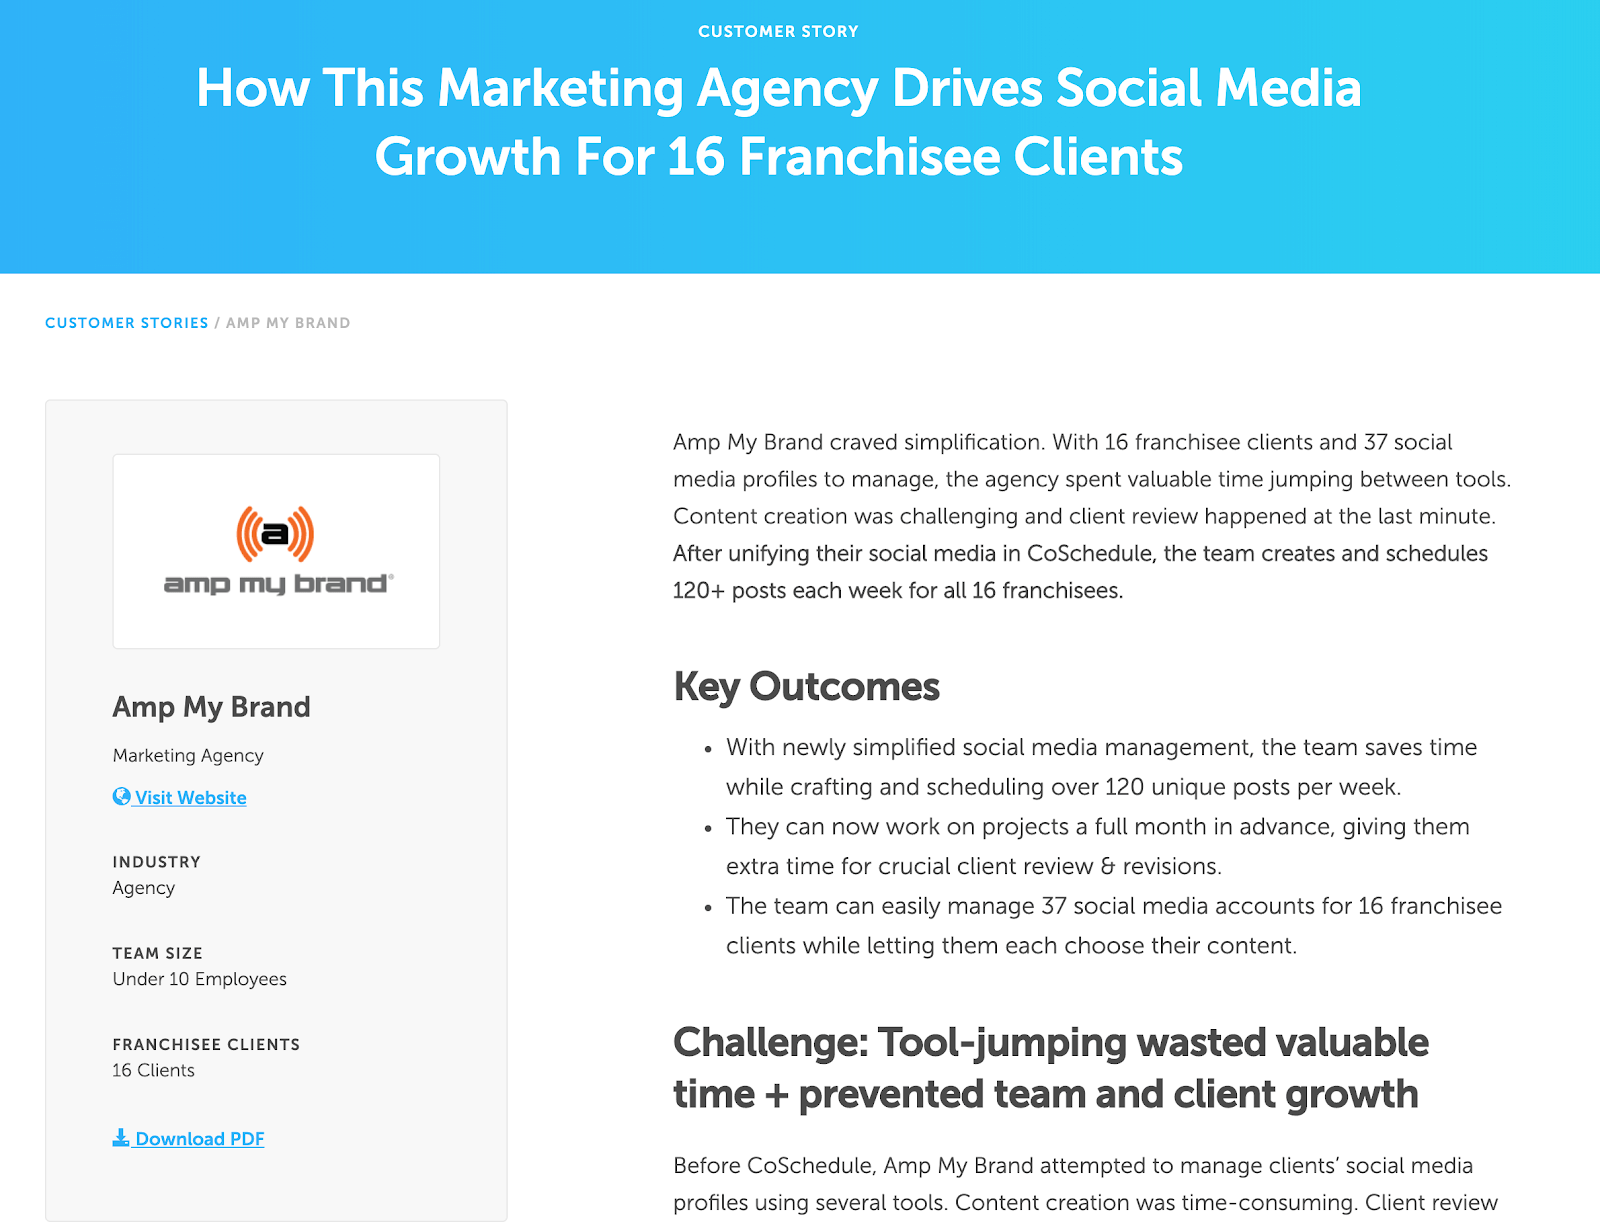 An example from a customer success story form Amp My Brand